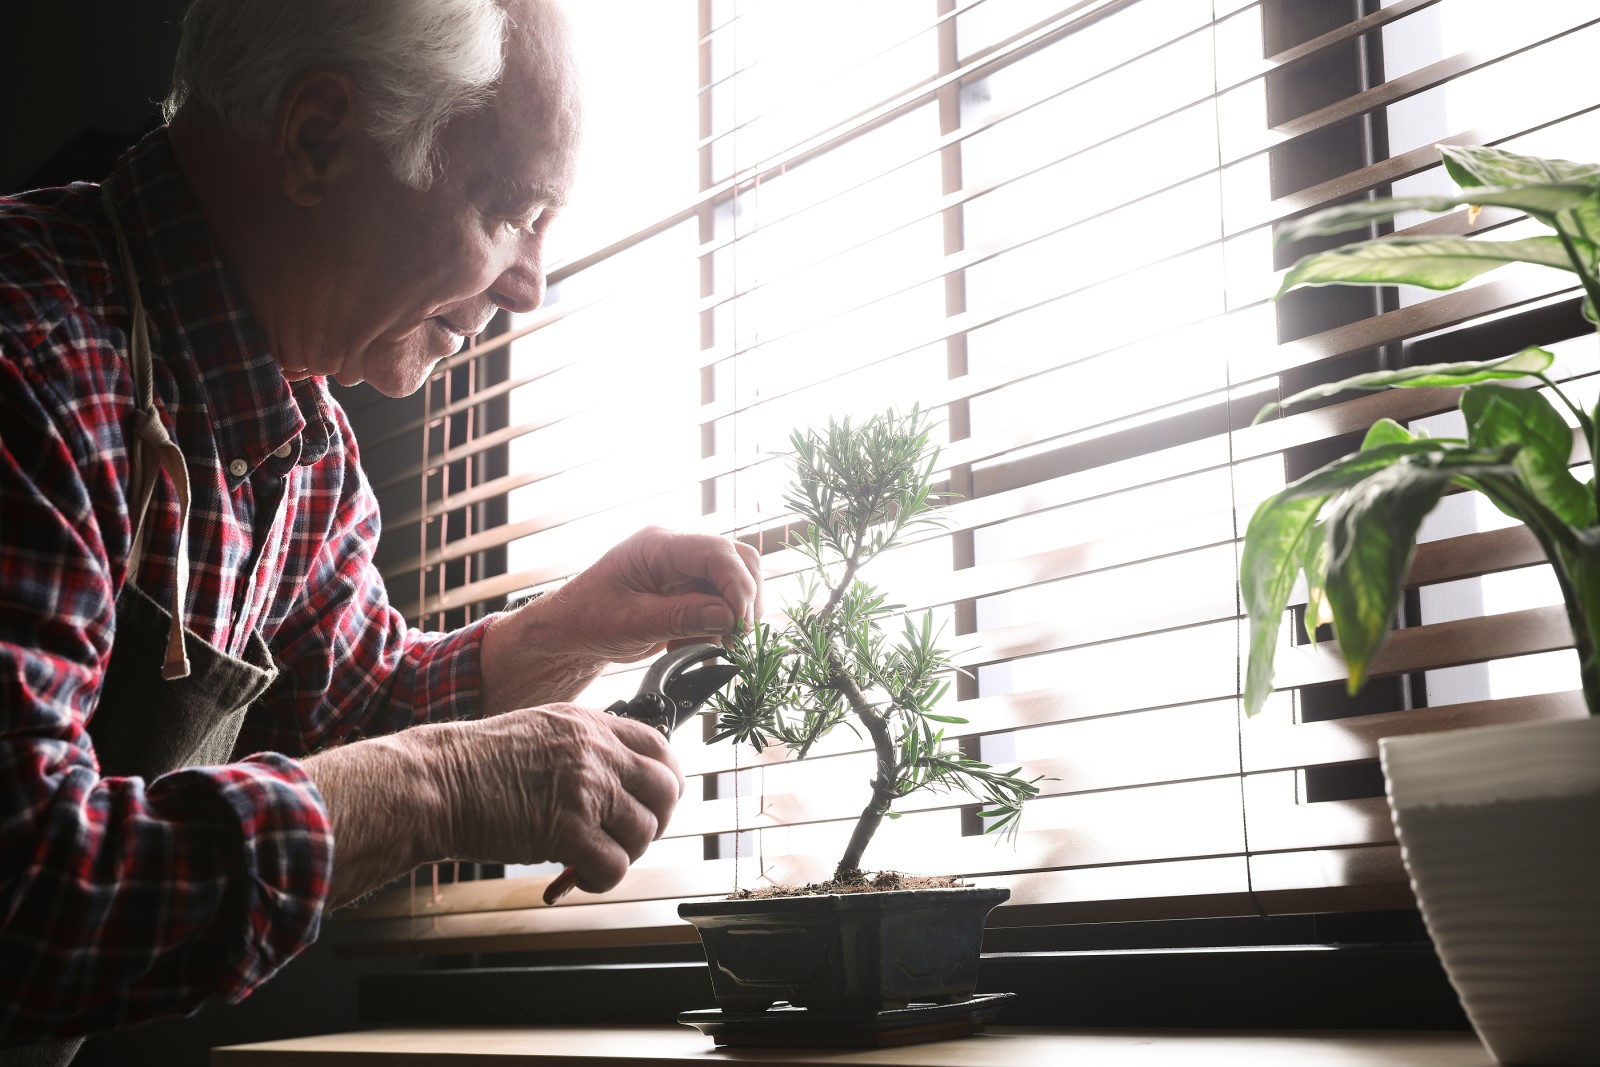 an elderly man taking care of indoor plants